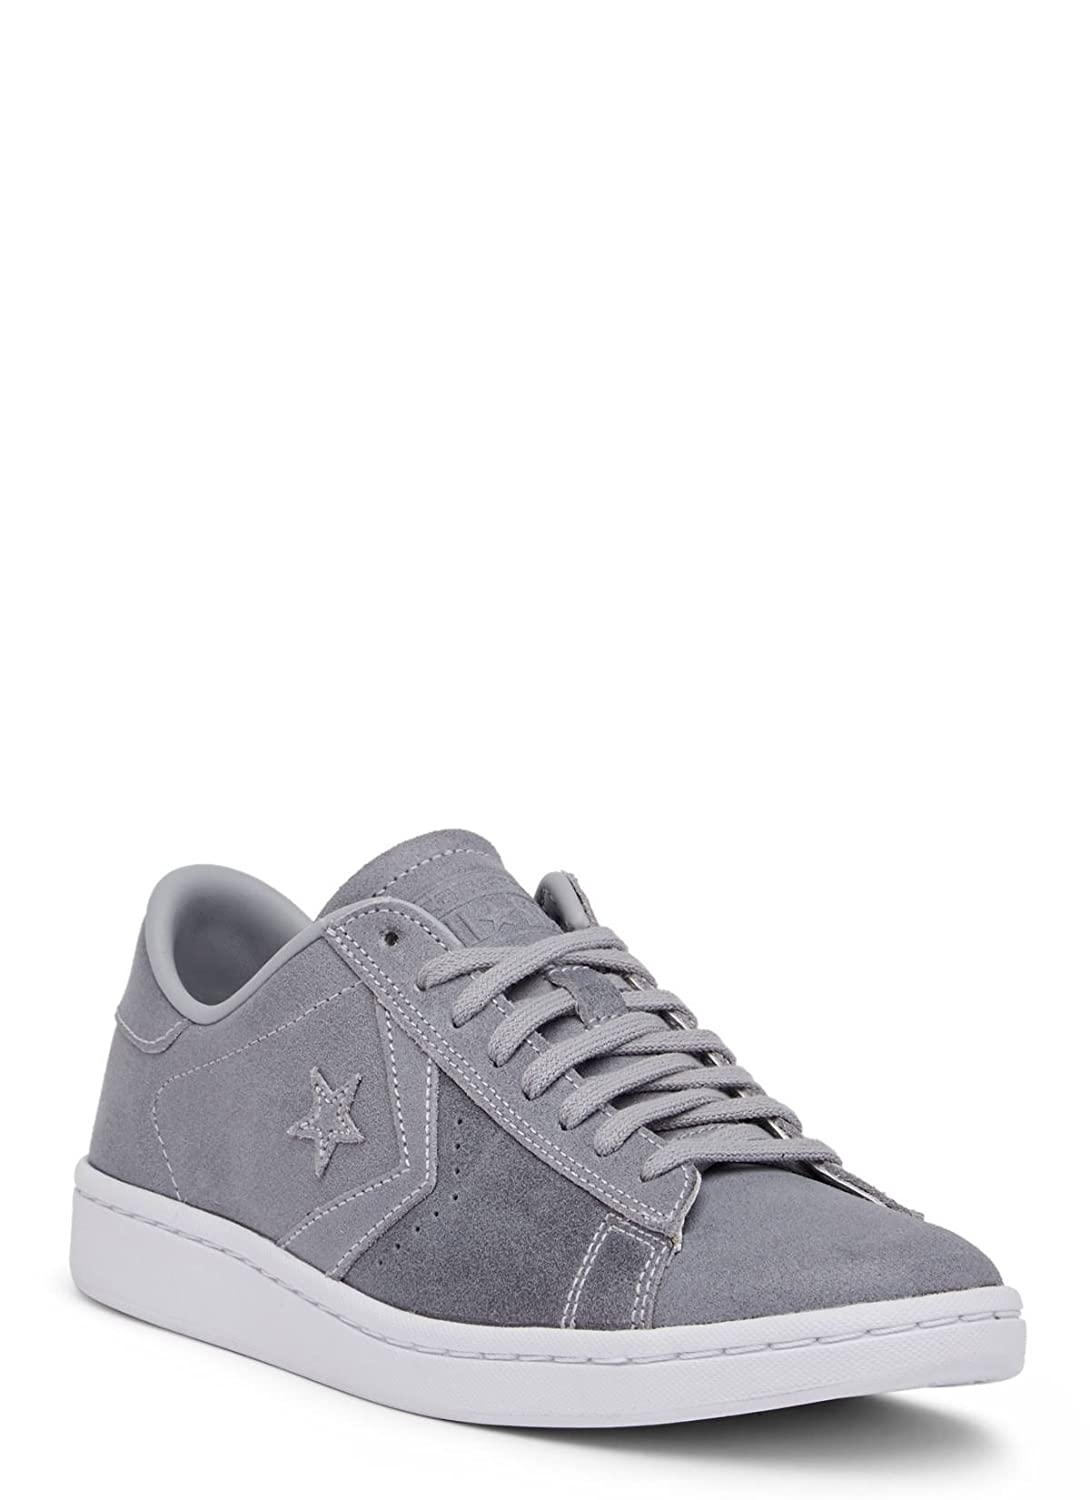 Converse Womens Pro Leather LP Sneaker B01N2WBQGH 10 B(M) US|Wolf Grey/Wolf Grey